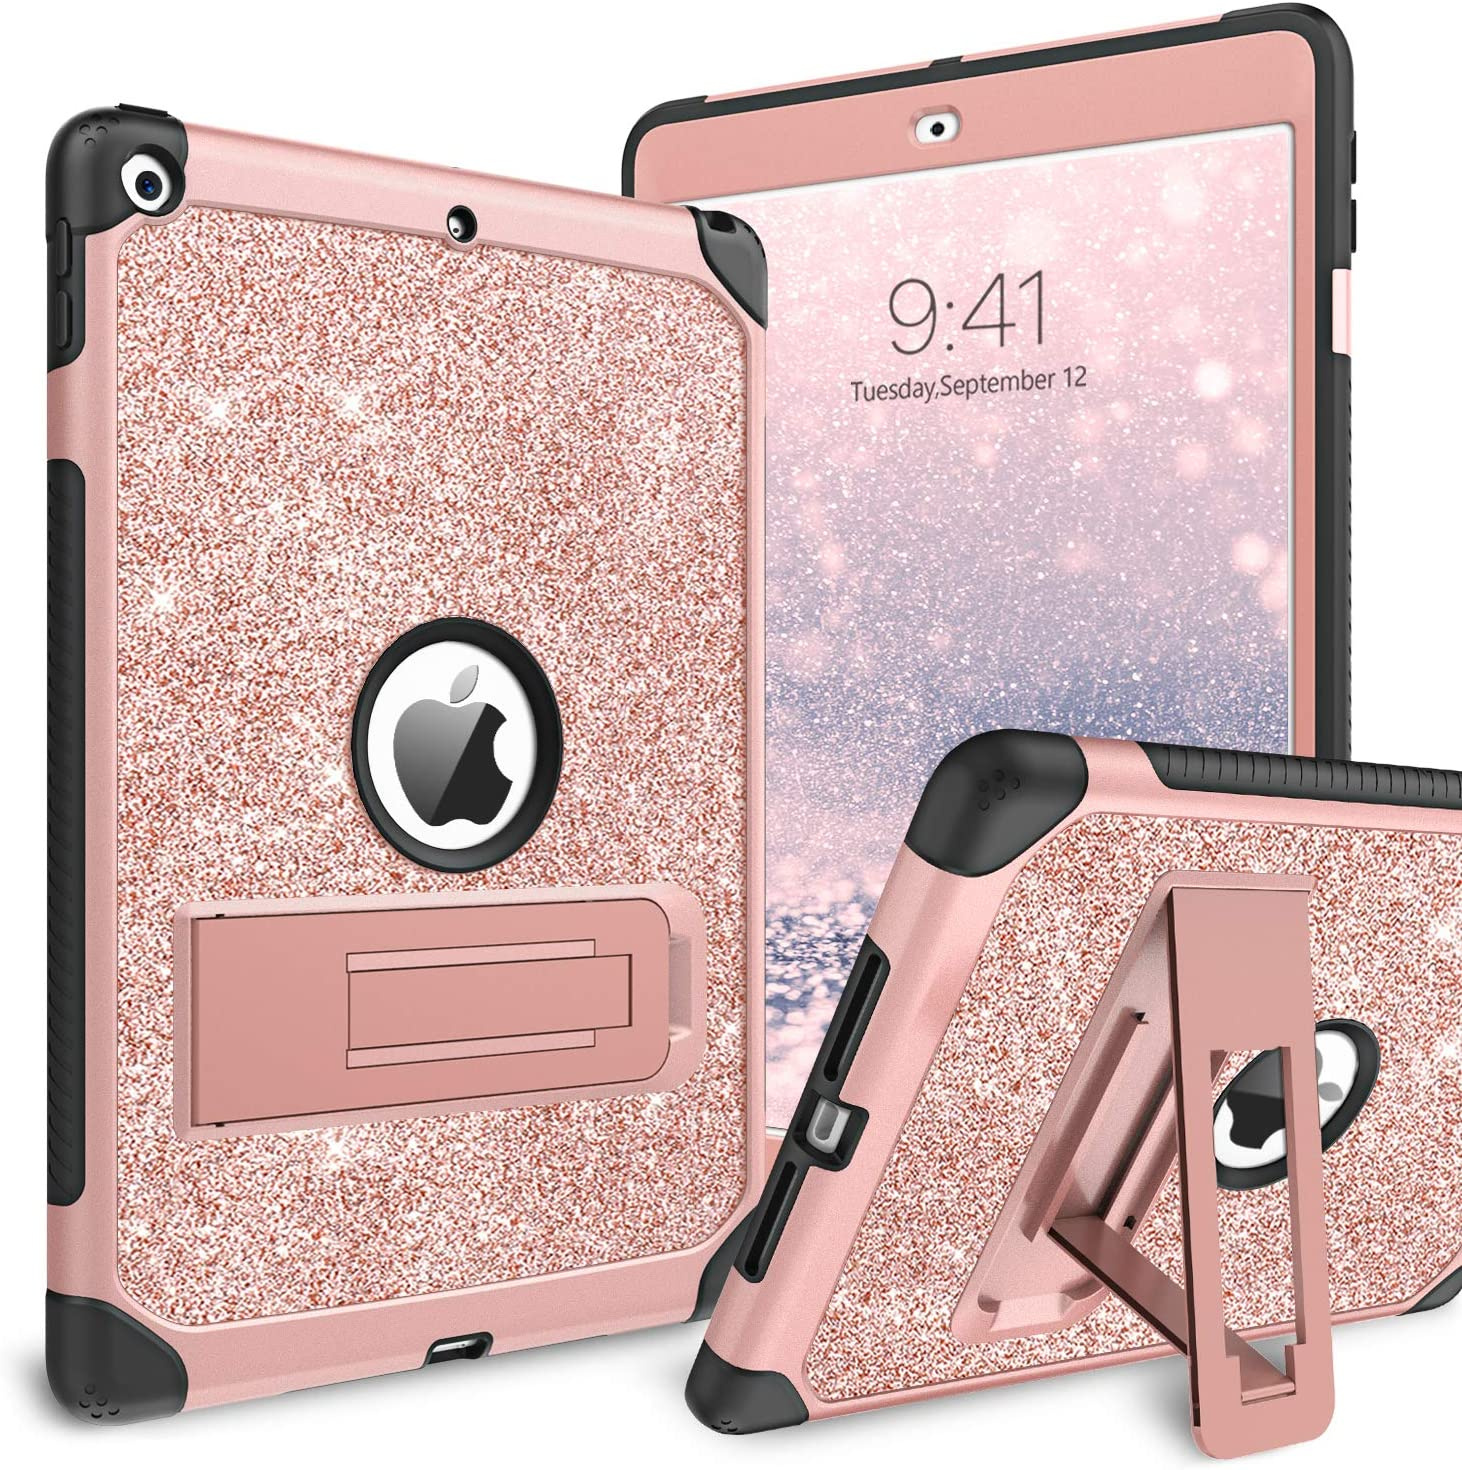 BENTOBEN iPad 8th Generation Case, iPad 10.2 2020 Case, Glitter Sparkly 3 Layers Shockproof Kickstand Durable Leather Full Body Protective Girls Women Tablet Cover for iPad 10.2 Inch 2020, Rose Gold